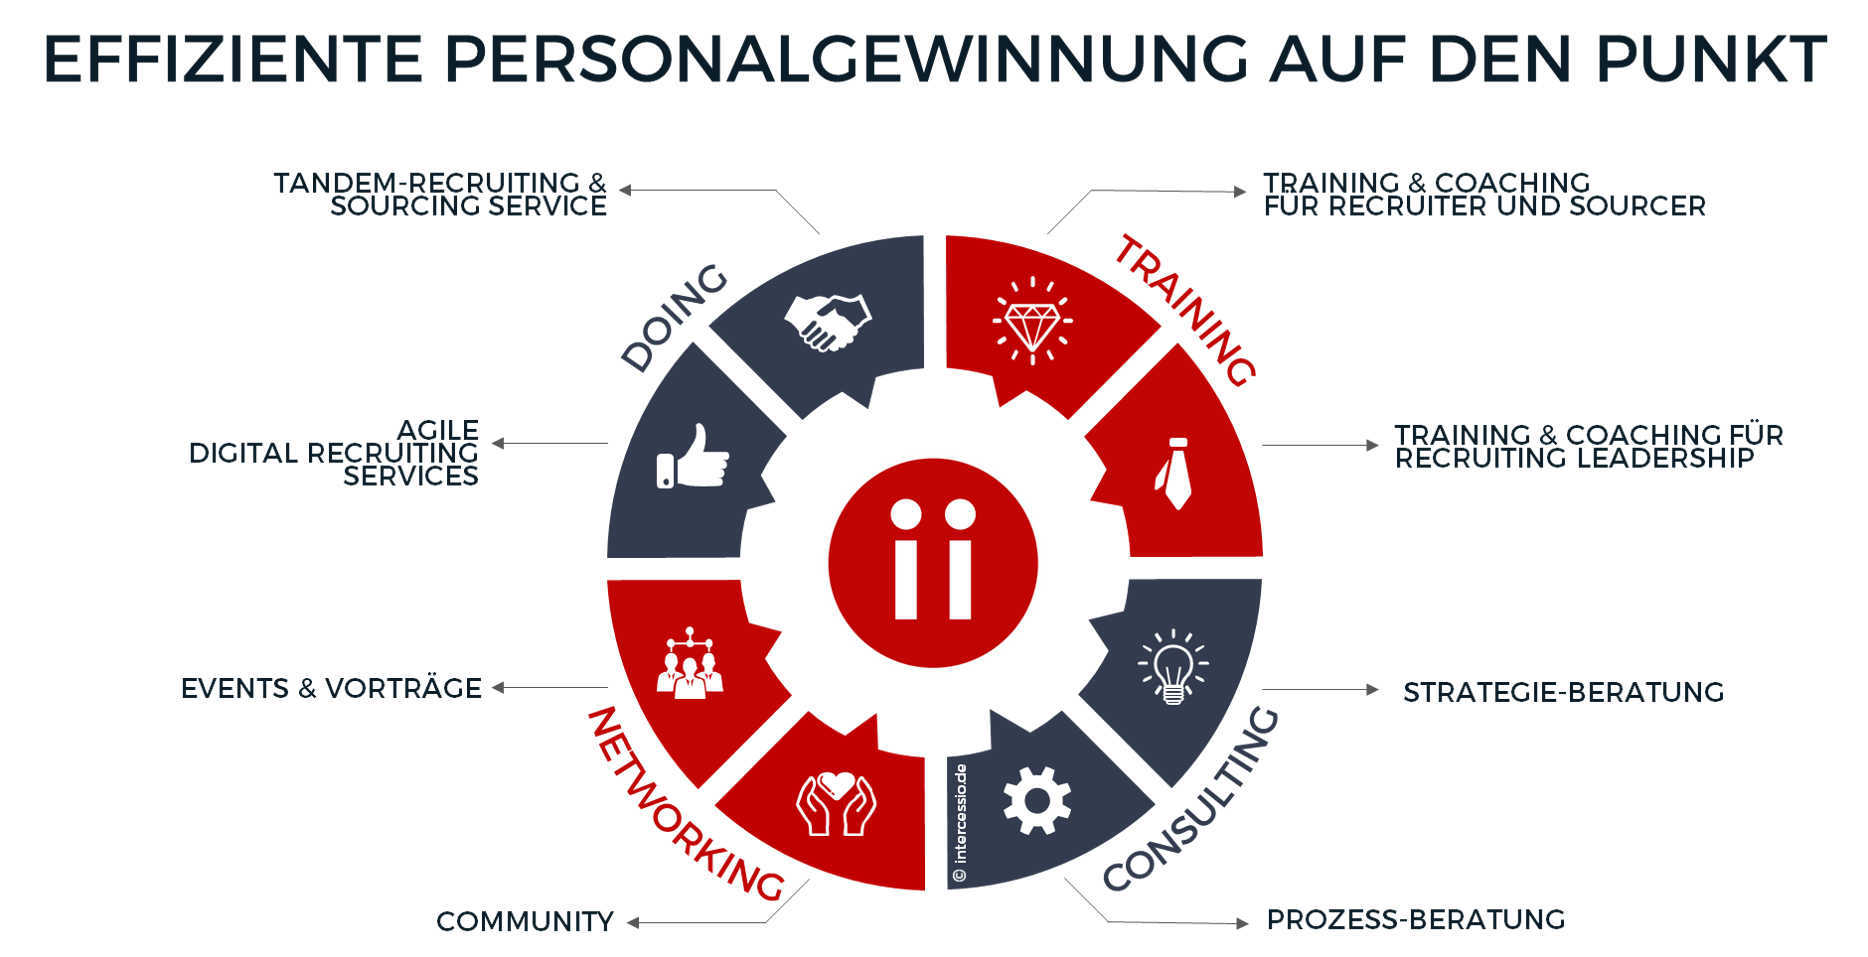 Intercessio - Effiziente Personalgewinnung auf den Punkt - Talent Acquisition Transformation